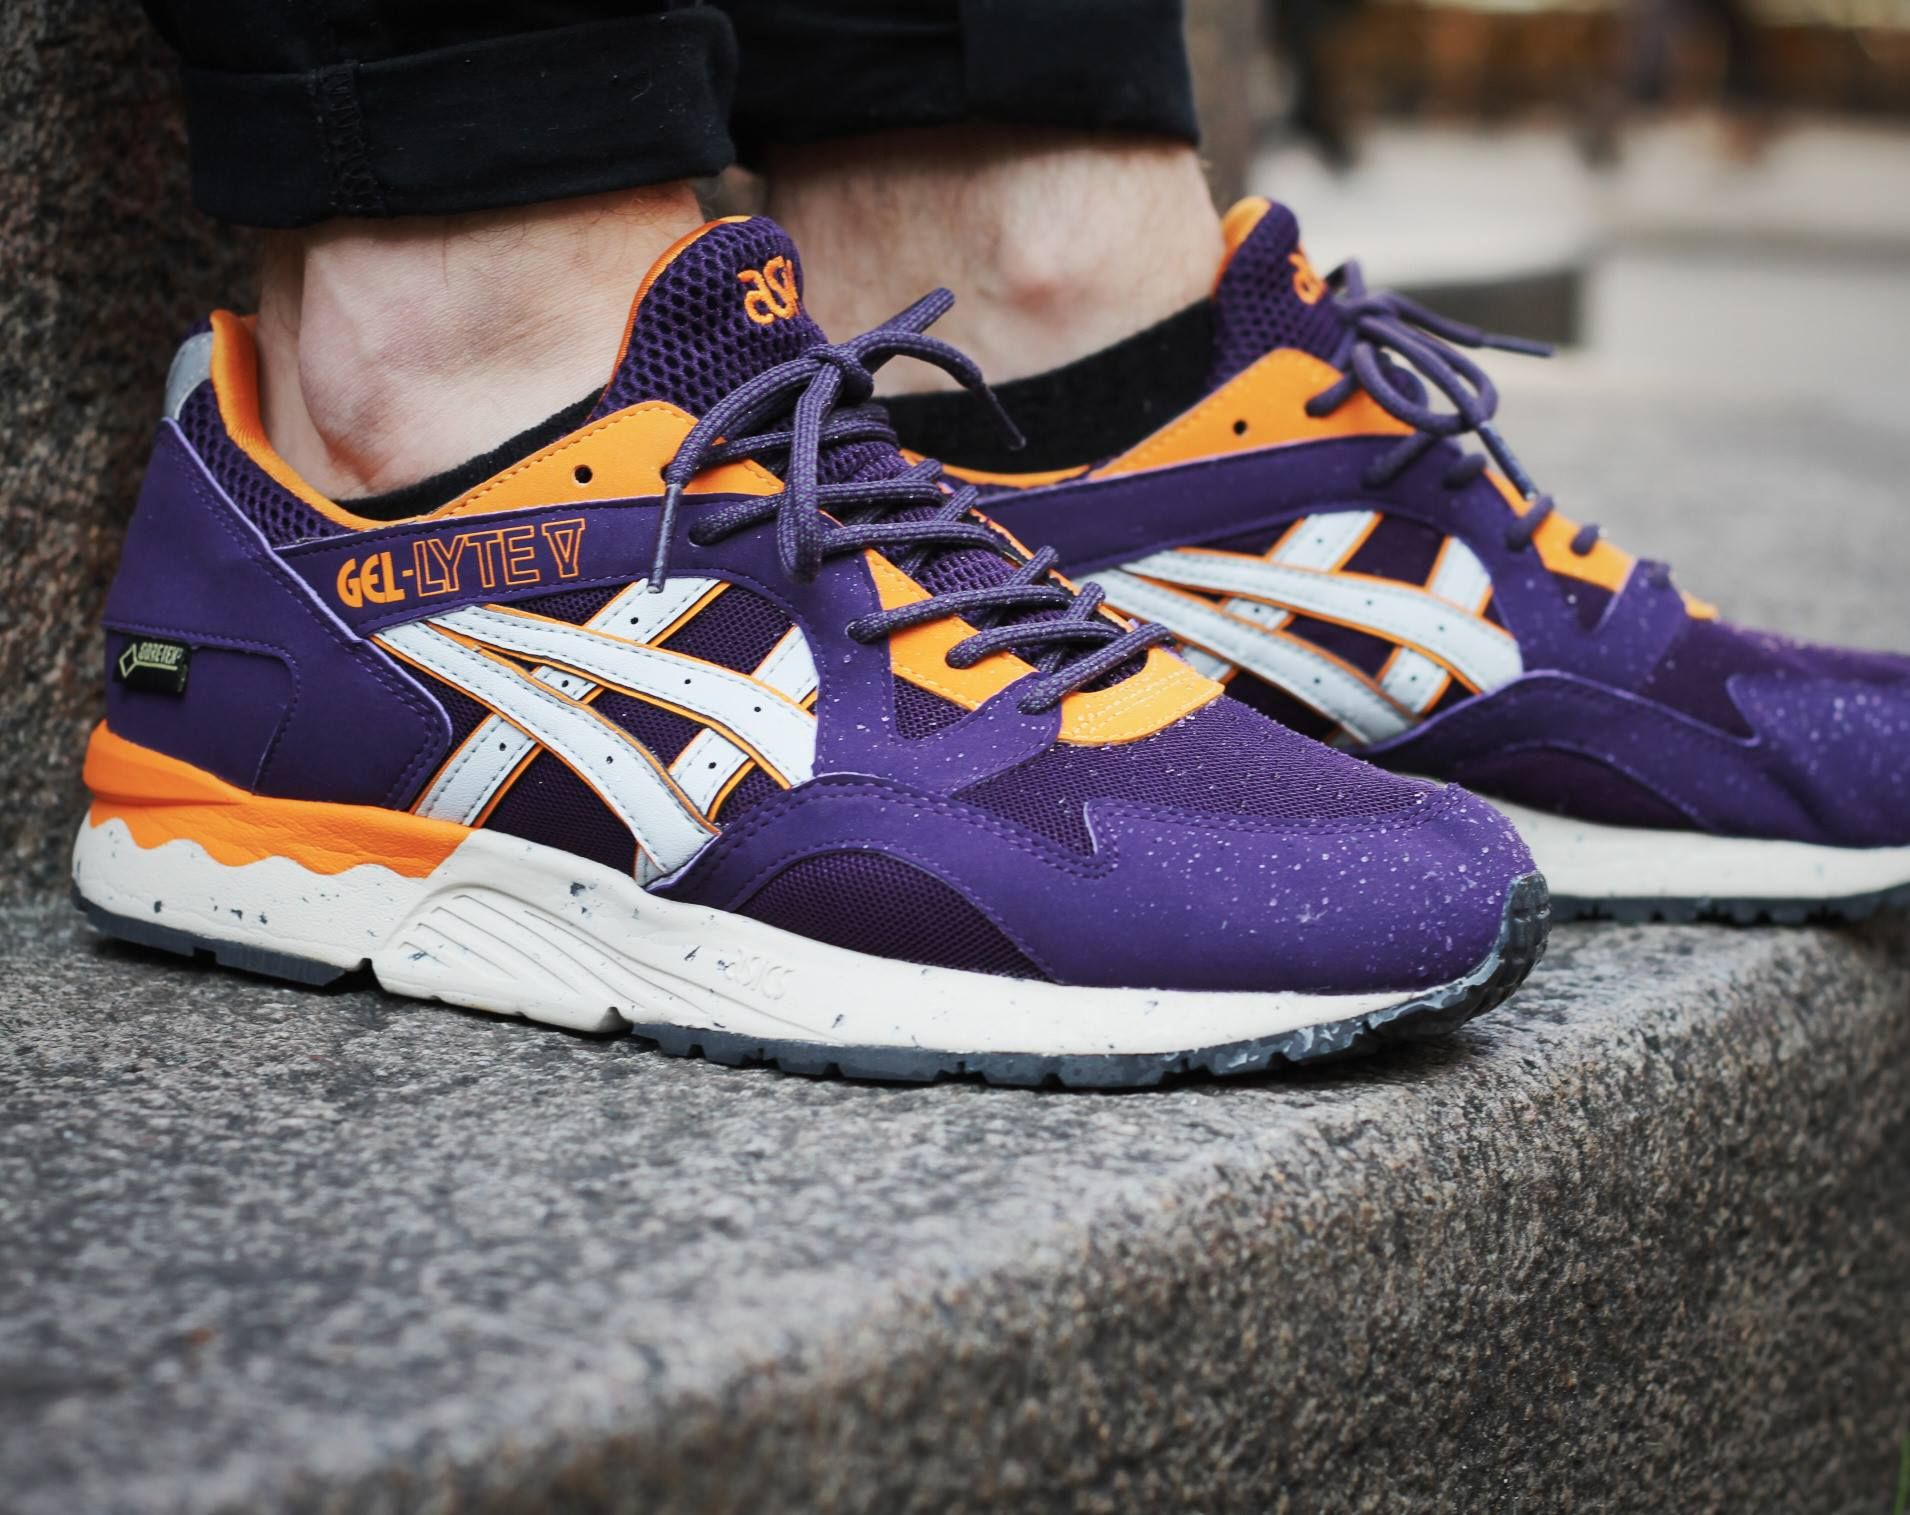 Asics Gel Lyte V Gore-Tex  Purple Orange  472fef644d3f